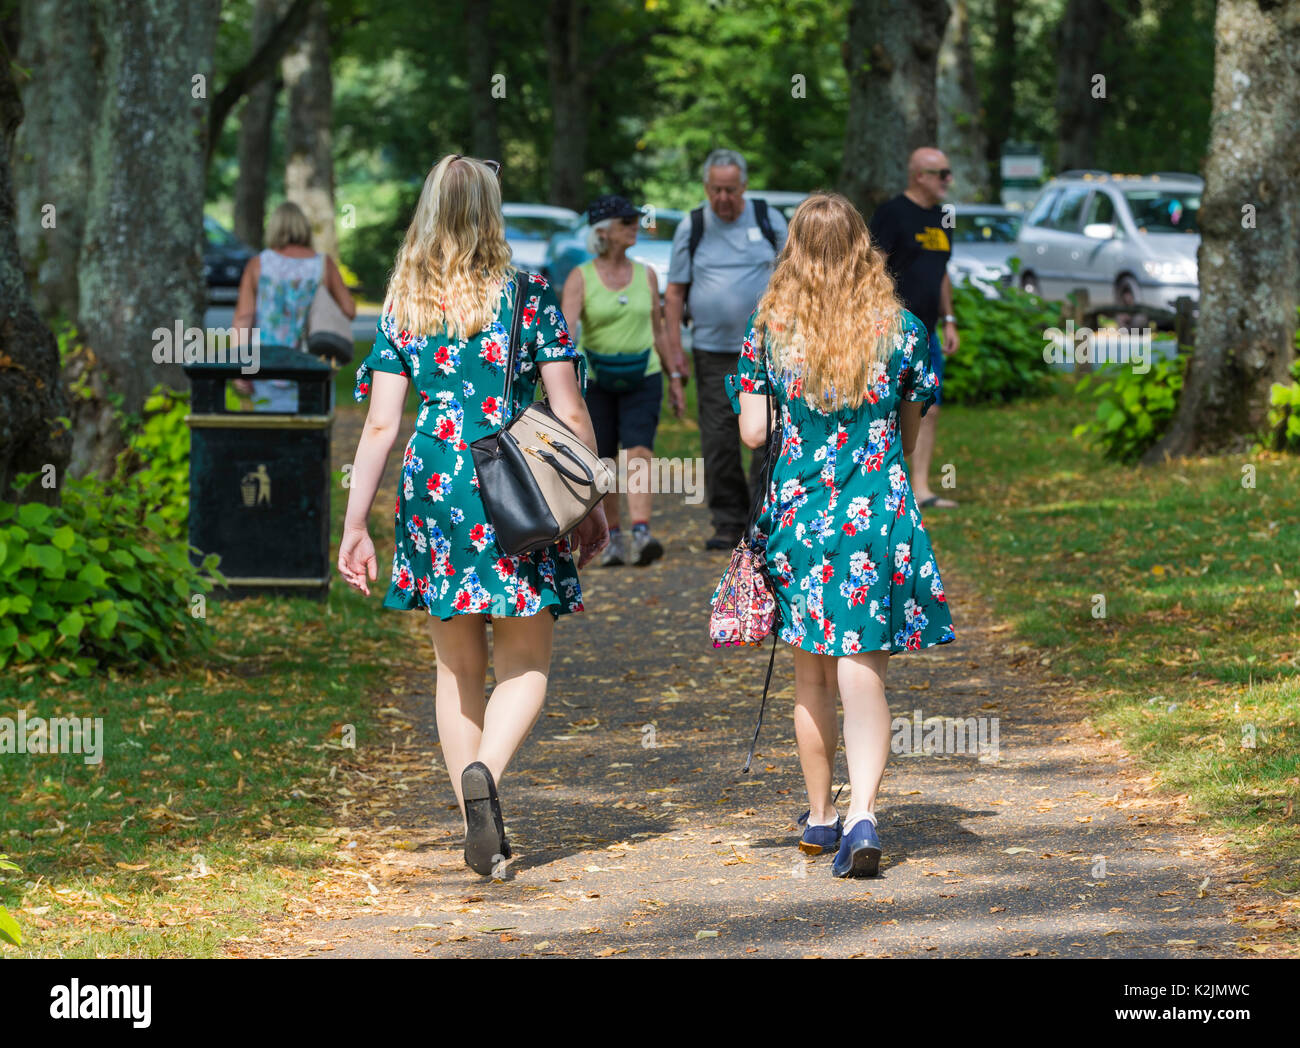 Pair of young women dressed in identical Summer dresses walking in Summer. 2 of a kind concept. Twins. Note: The women may or may not be related. - Stock Image